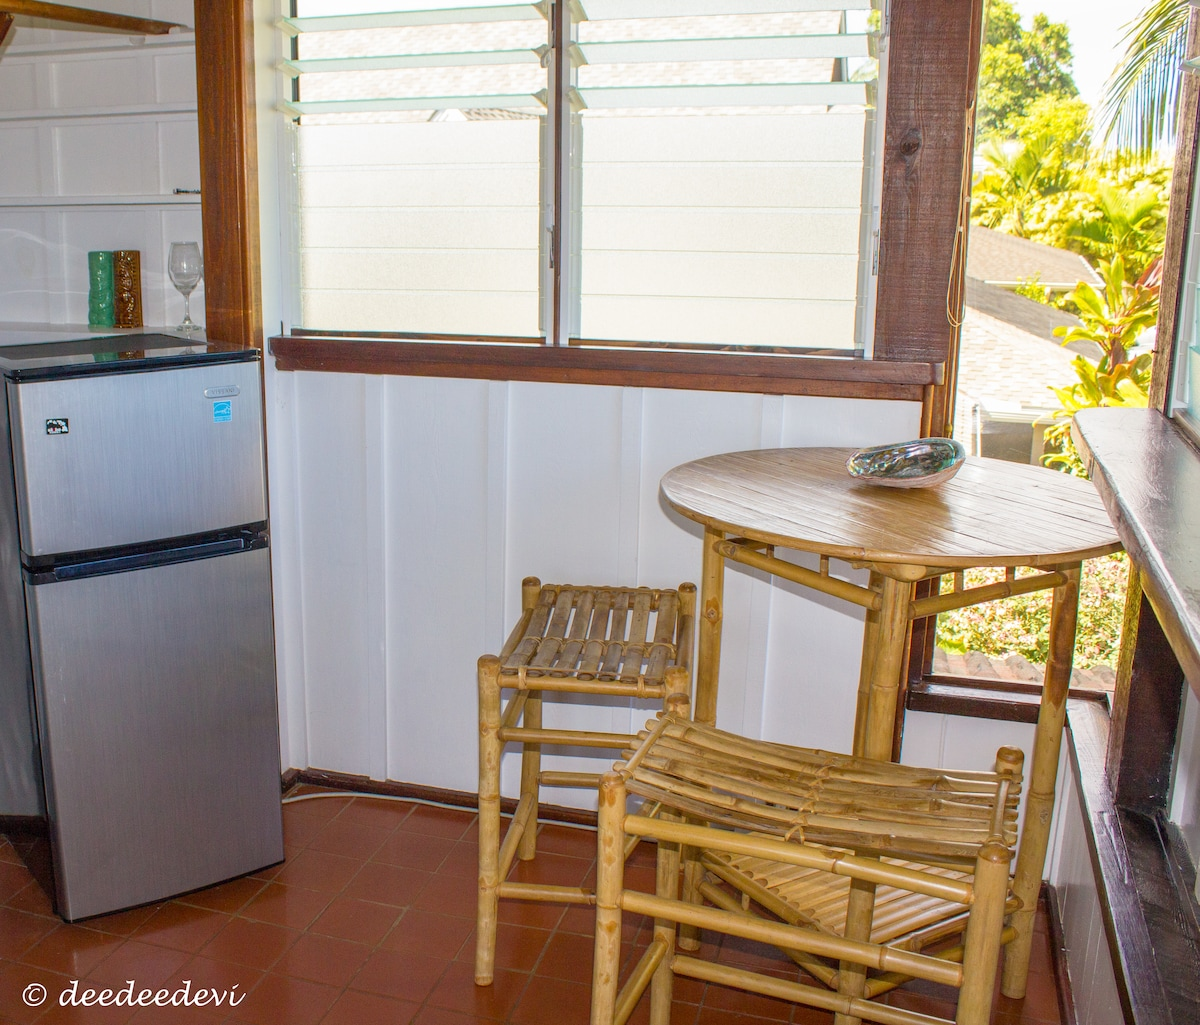 small refrigerator for take away / closet area and table with peek a boo ocean view (when trees are trimmed)